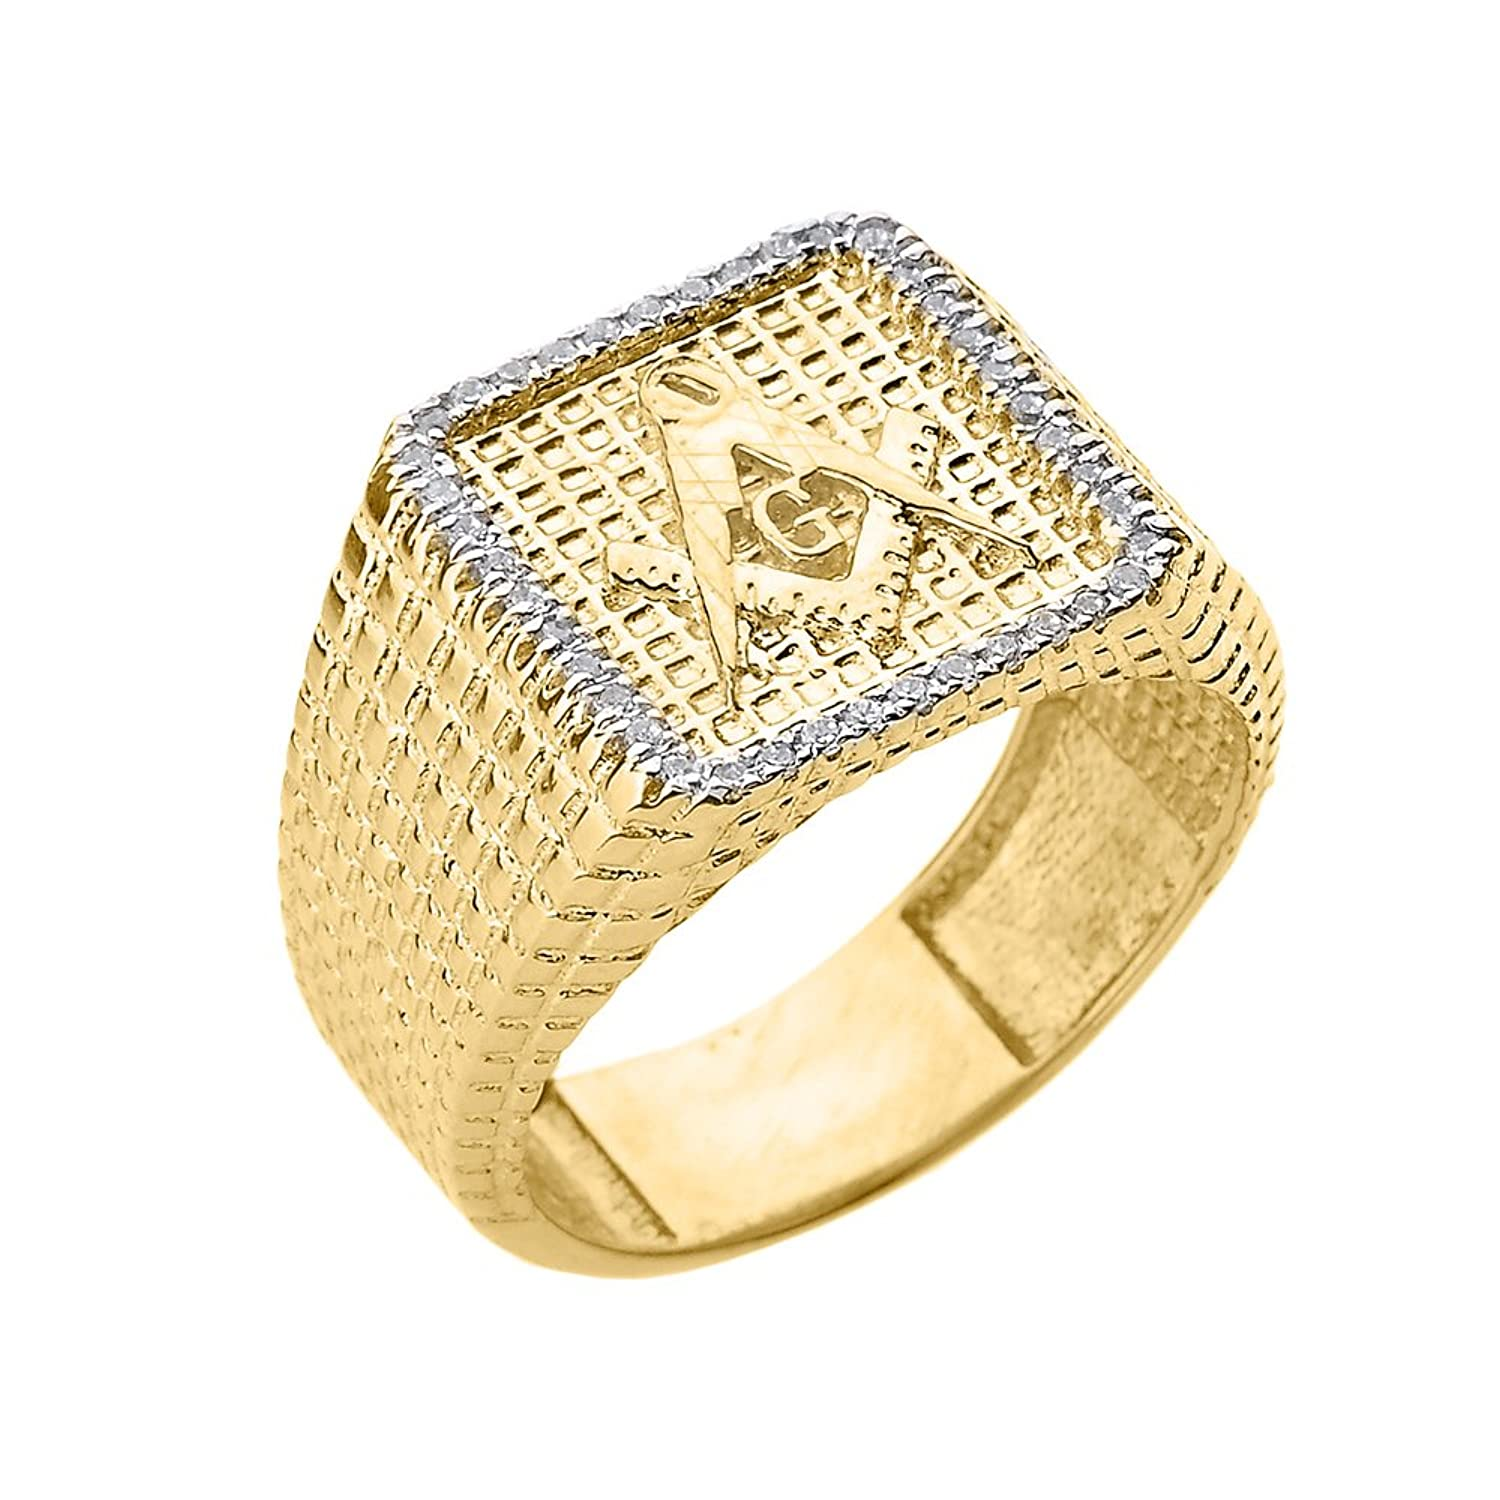 Men's Solid 14k Yellow Gold Textured Band Diamond-Studded Masonic Ring